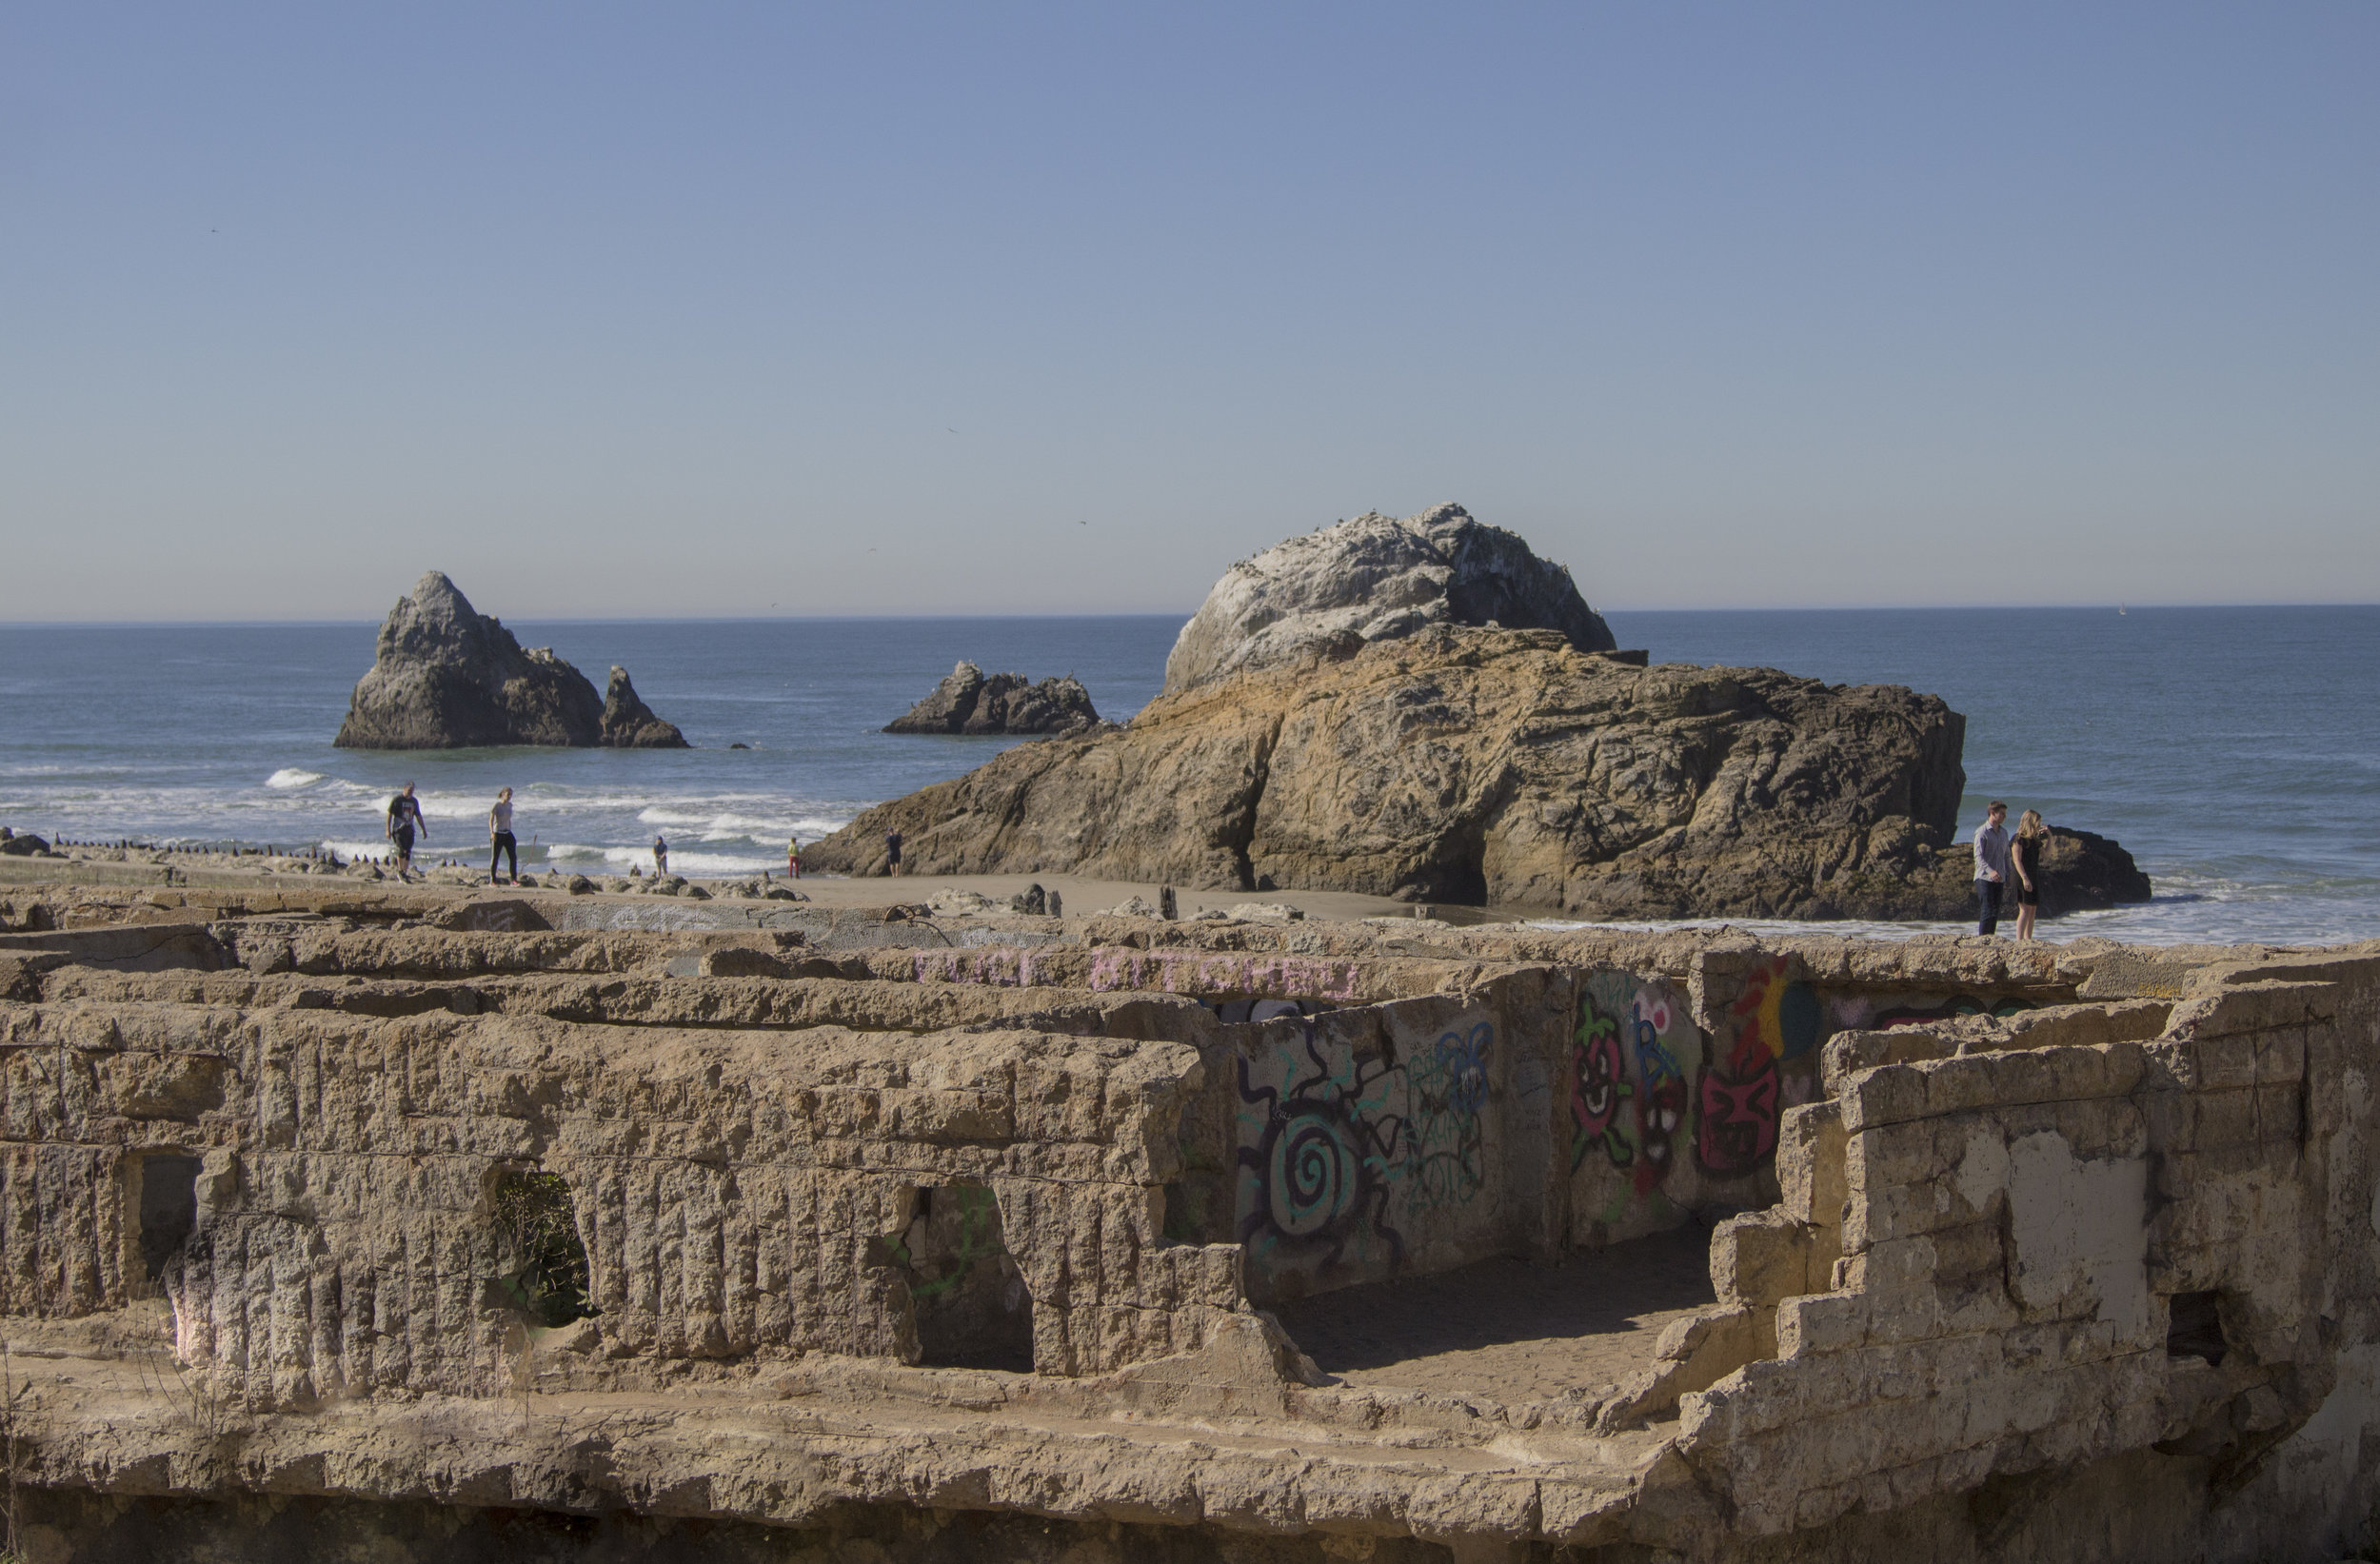 Sutro Bath ruins. Lands End